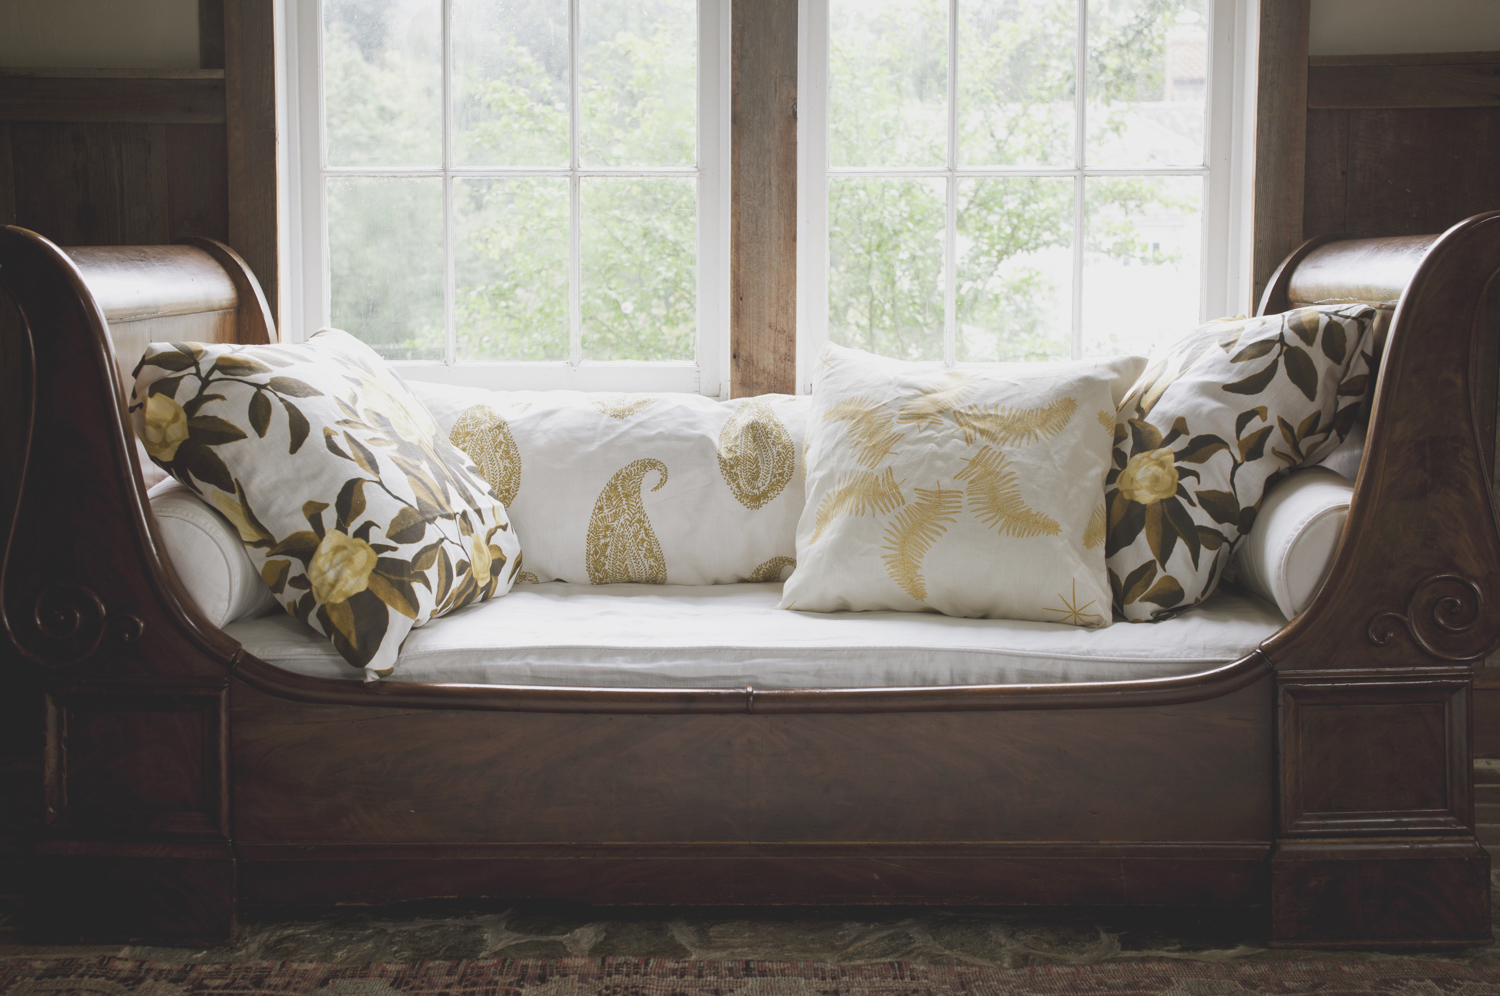 CLOTH & KIND // Good Reads: Habitat, The Field Guide to Decorating by Lauren Liess